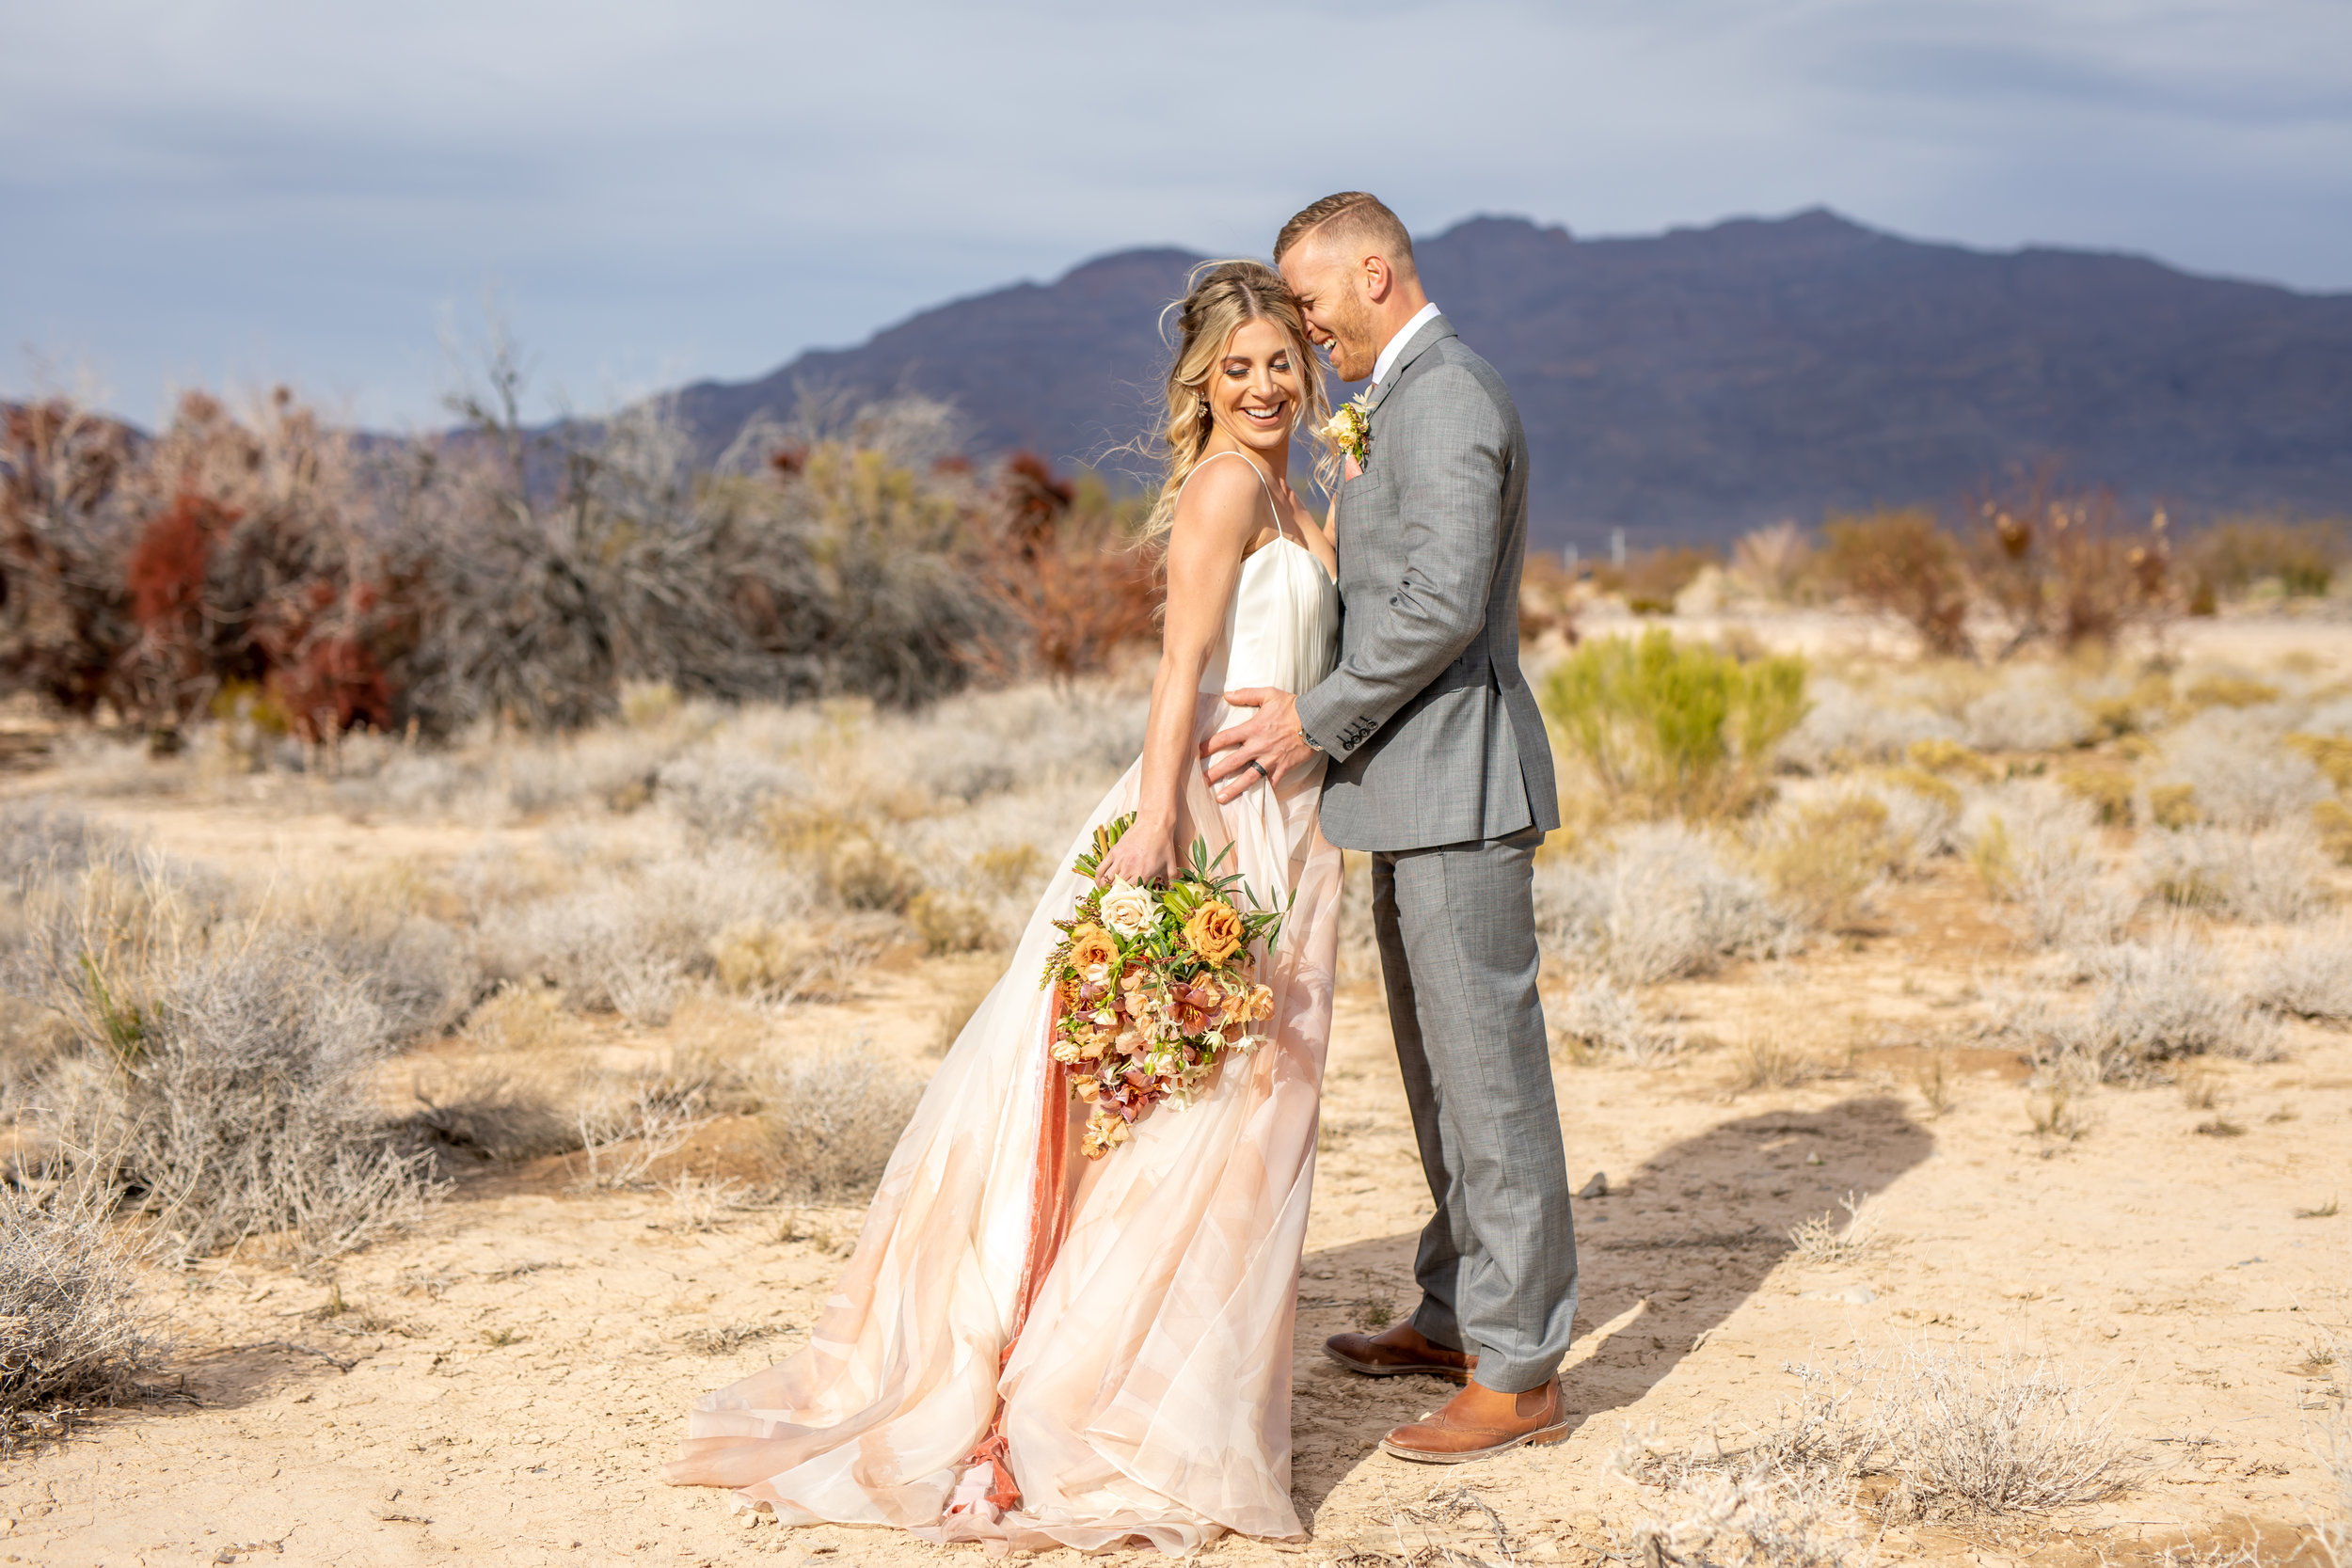 Hannah-cessna-photography-cleveland-ohio-wedding-photograper-Las-Vegas-Nevada-Red-Rocks_0143.jpg